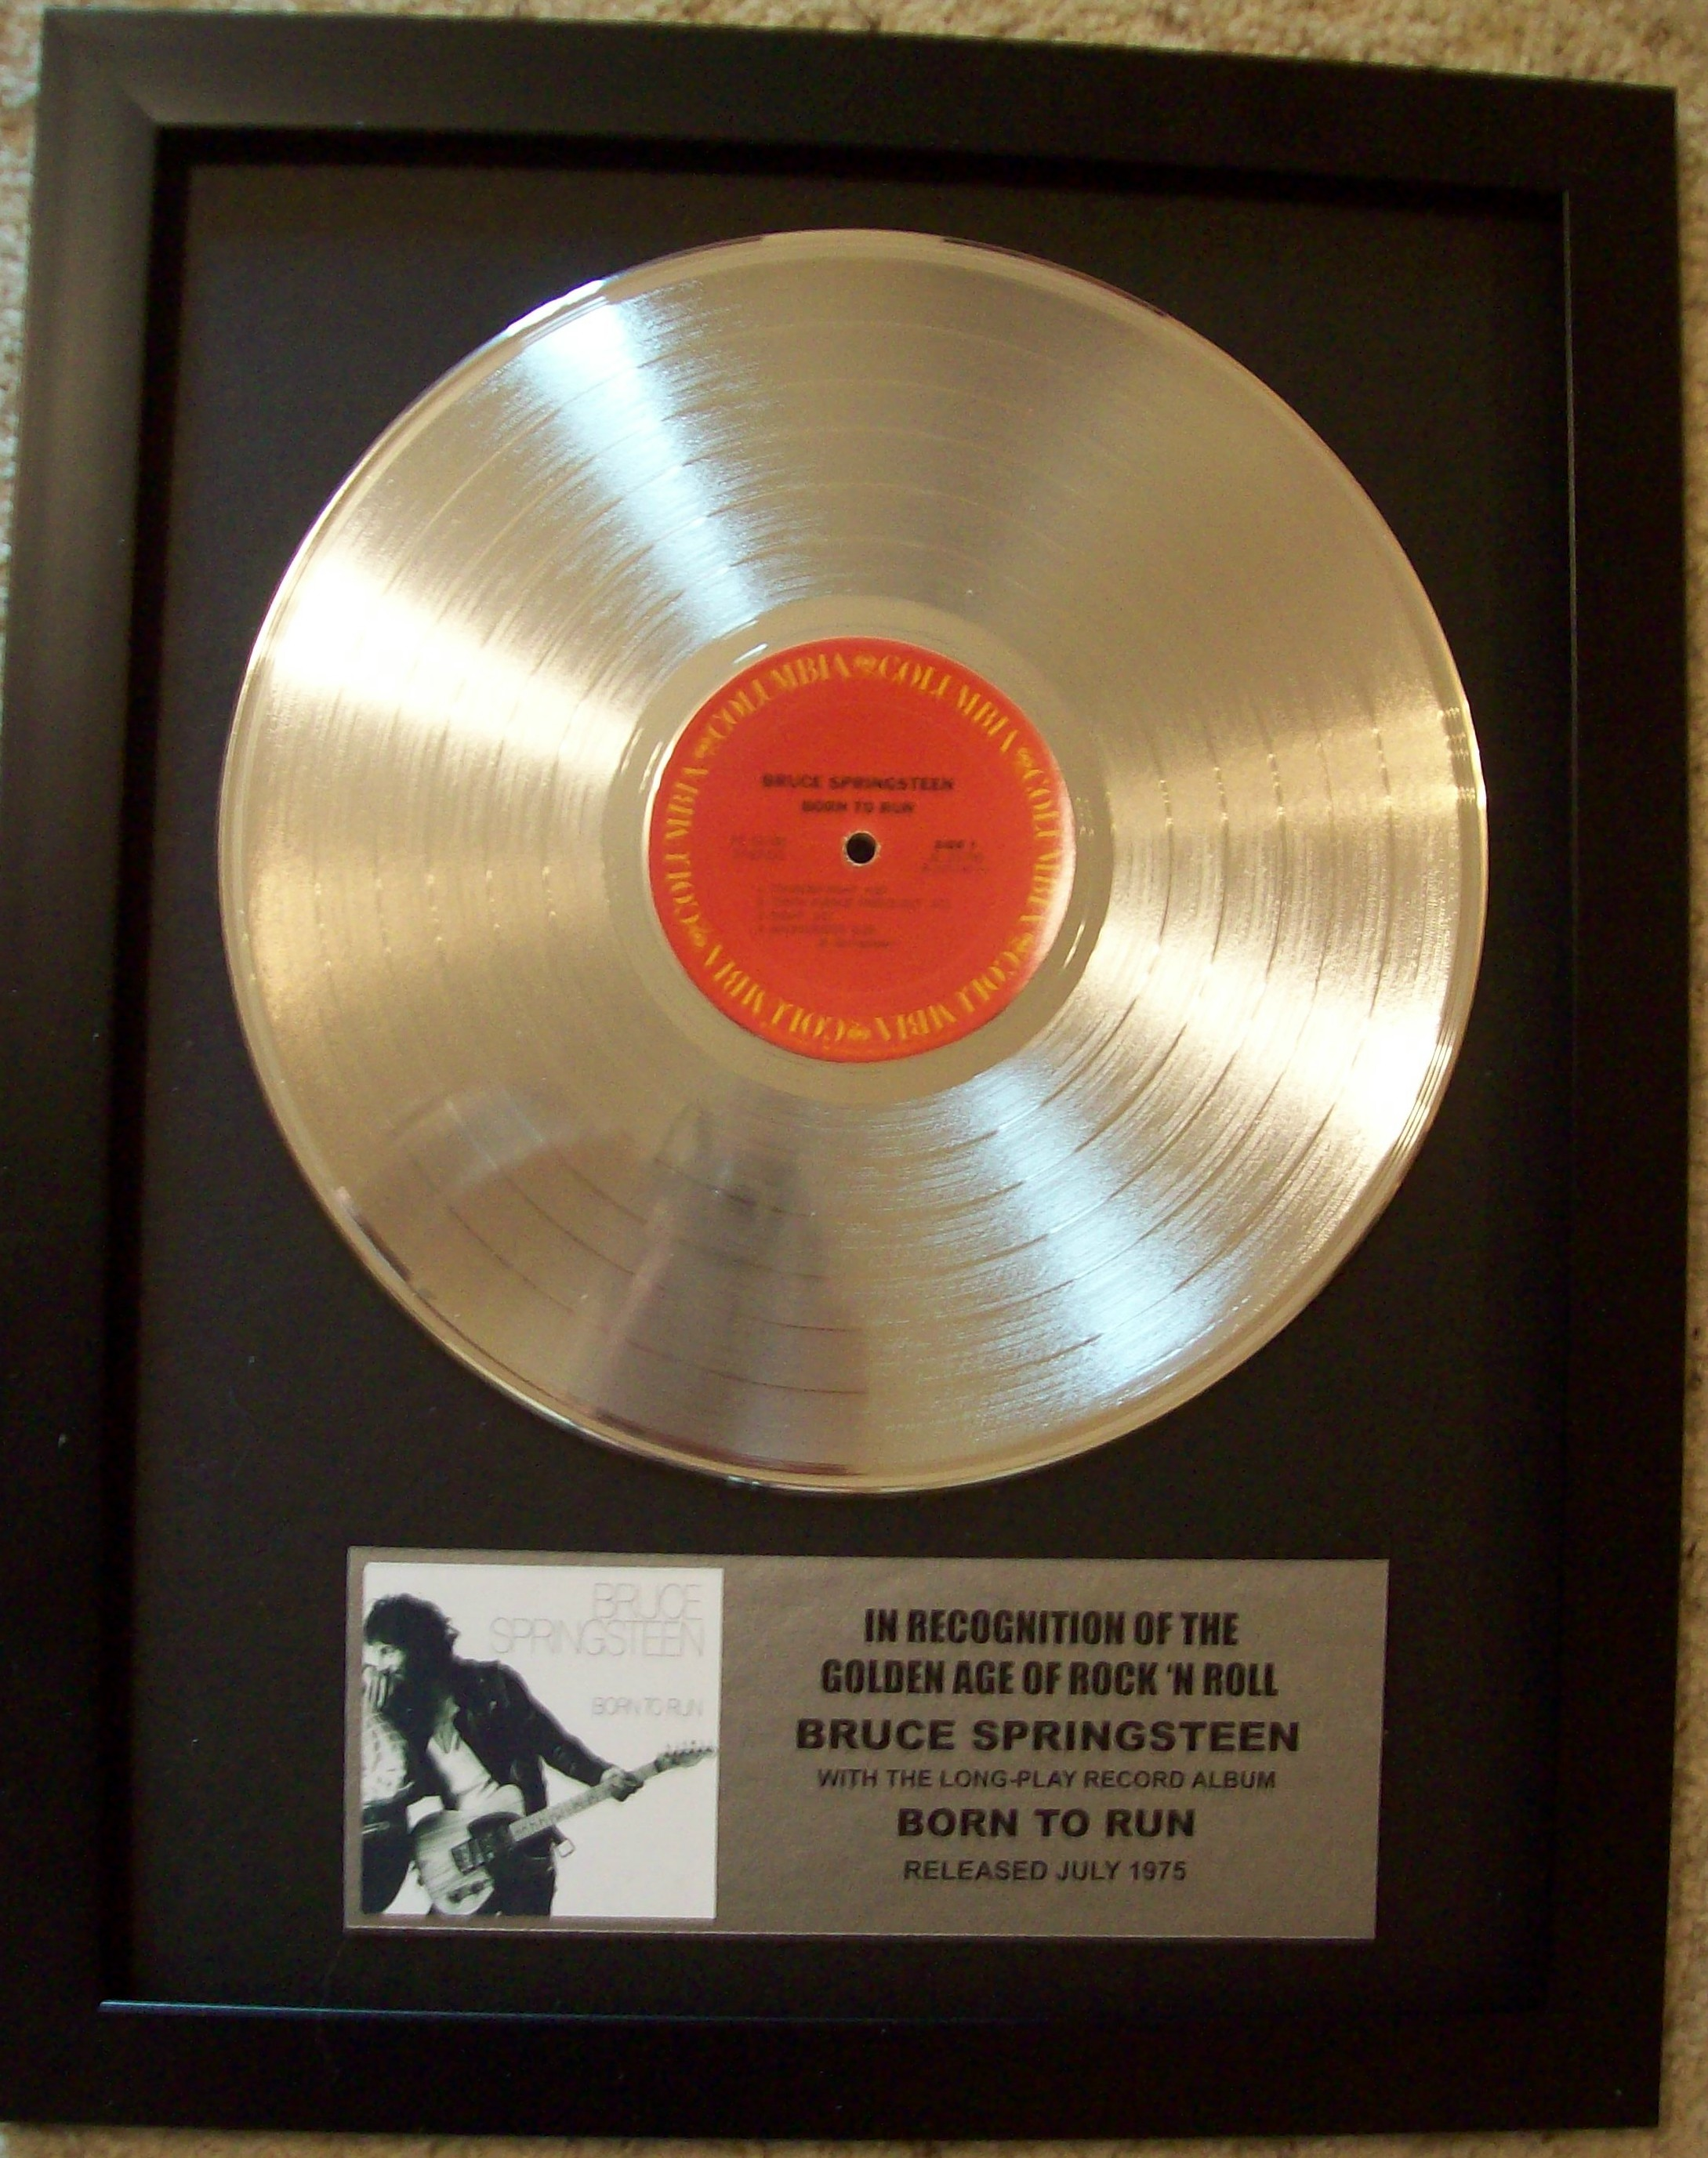 Image for Bruce Springsteen Born To Run Platinum Record